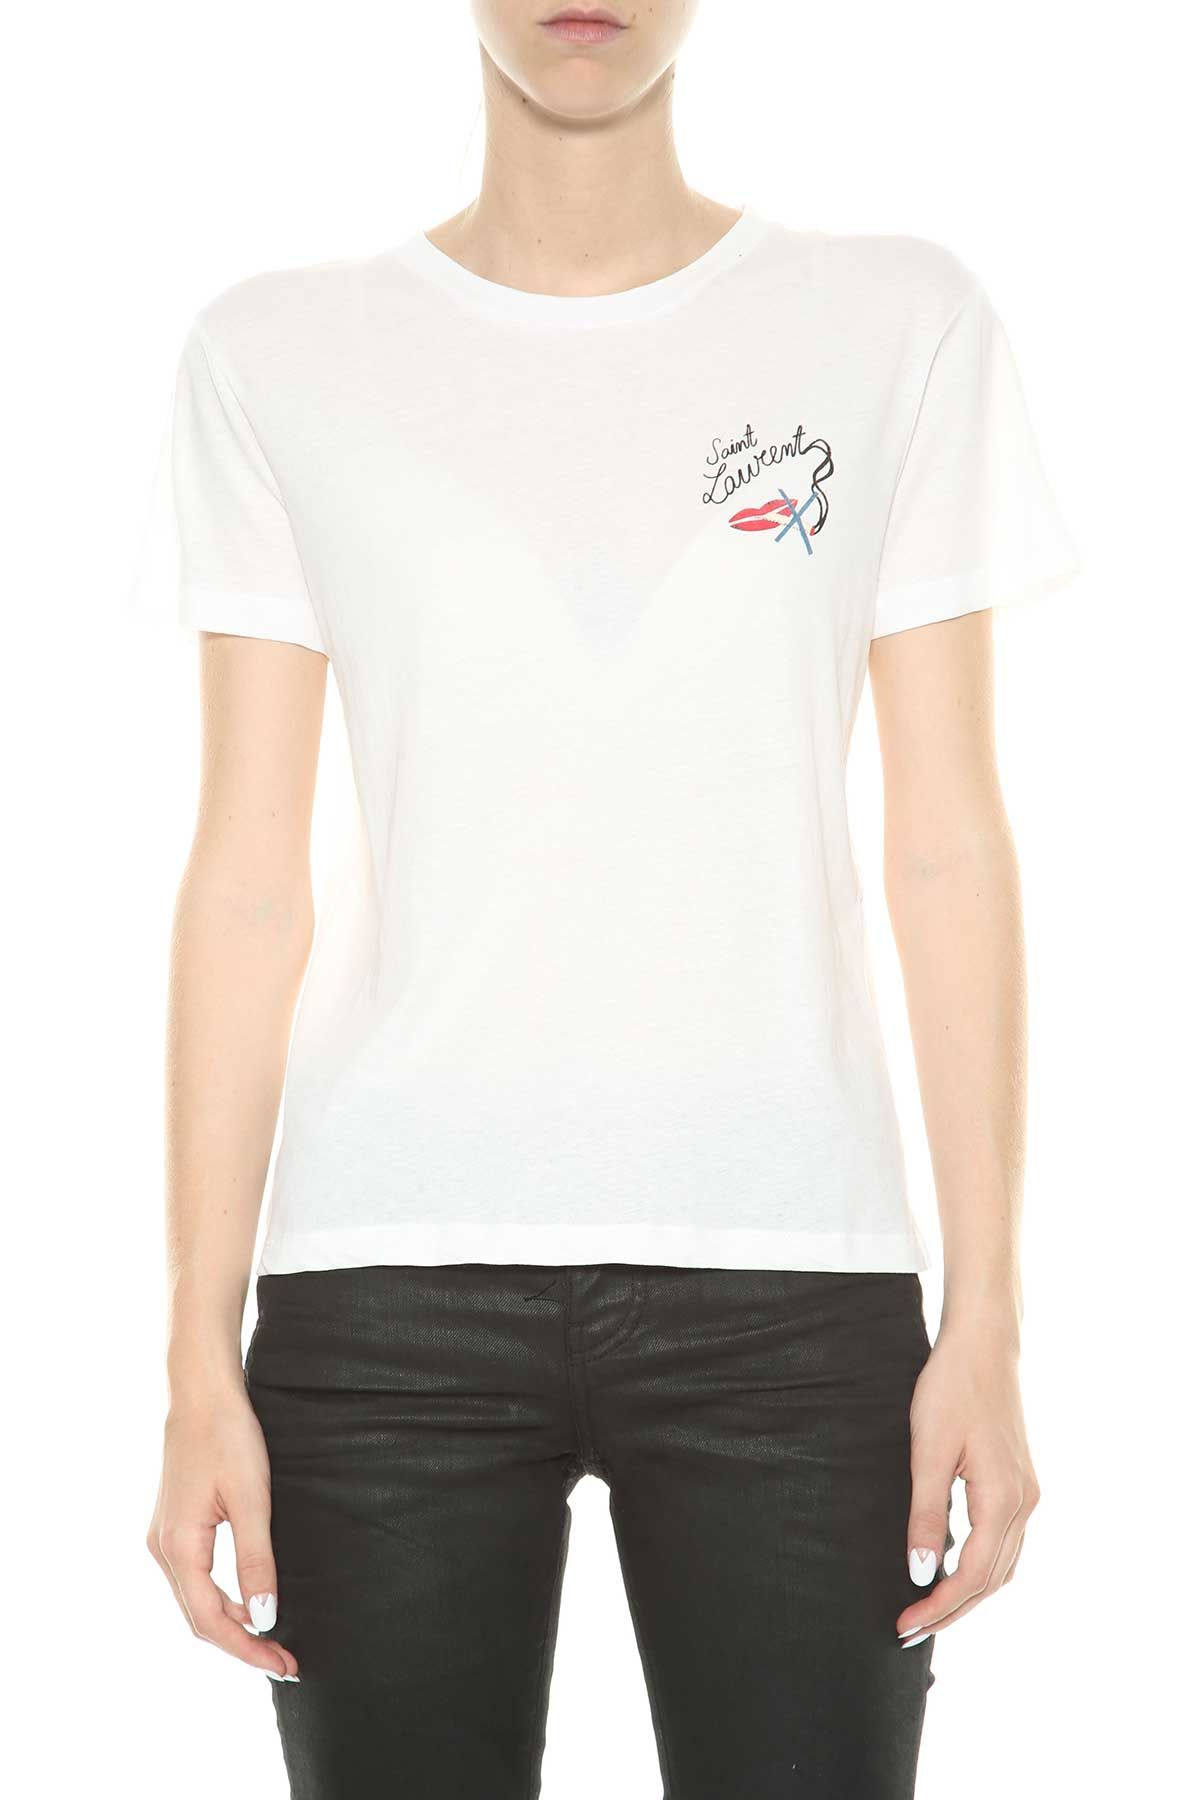 Saint Laurent White T-shirt With Print